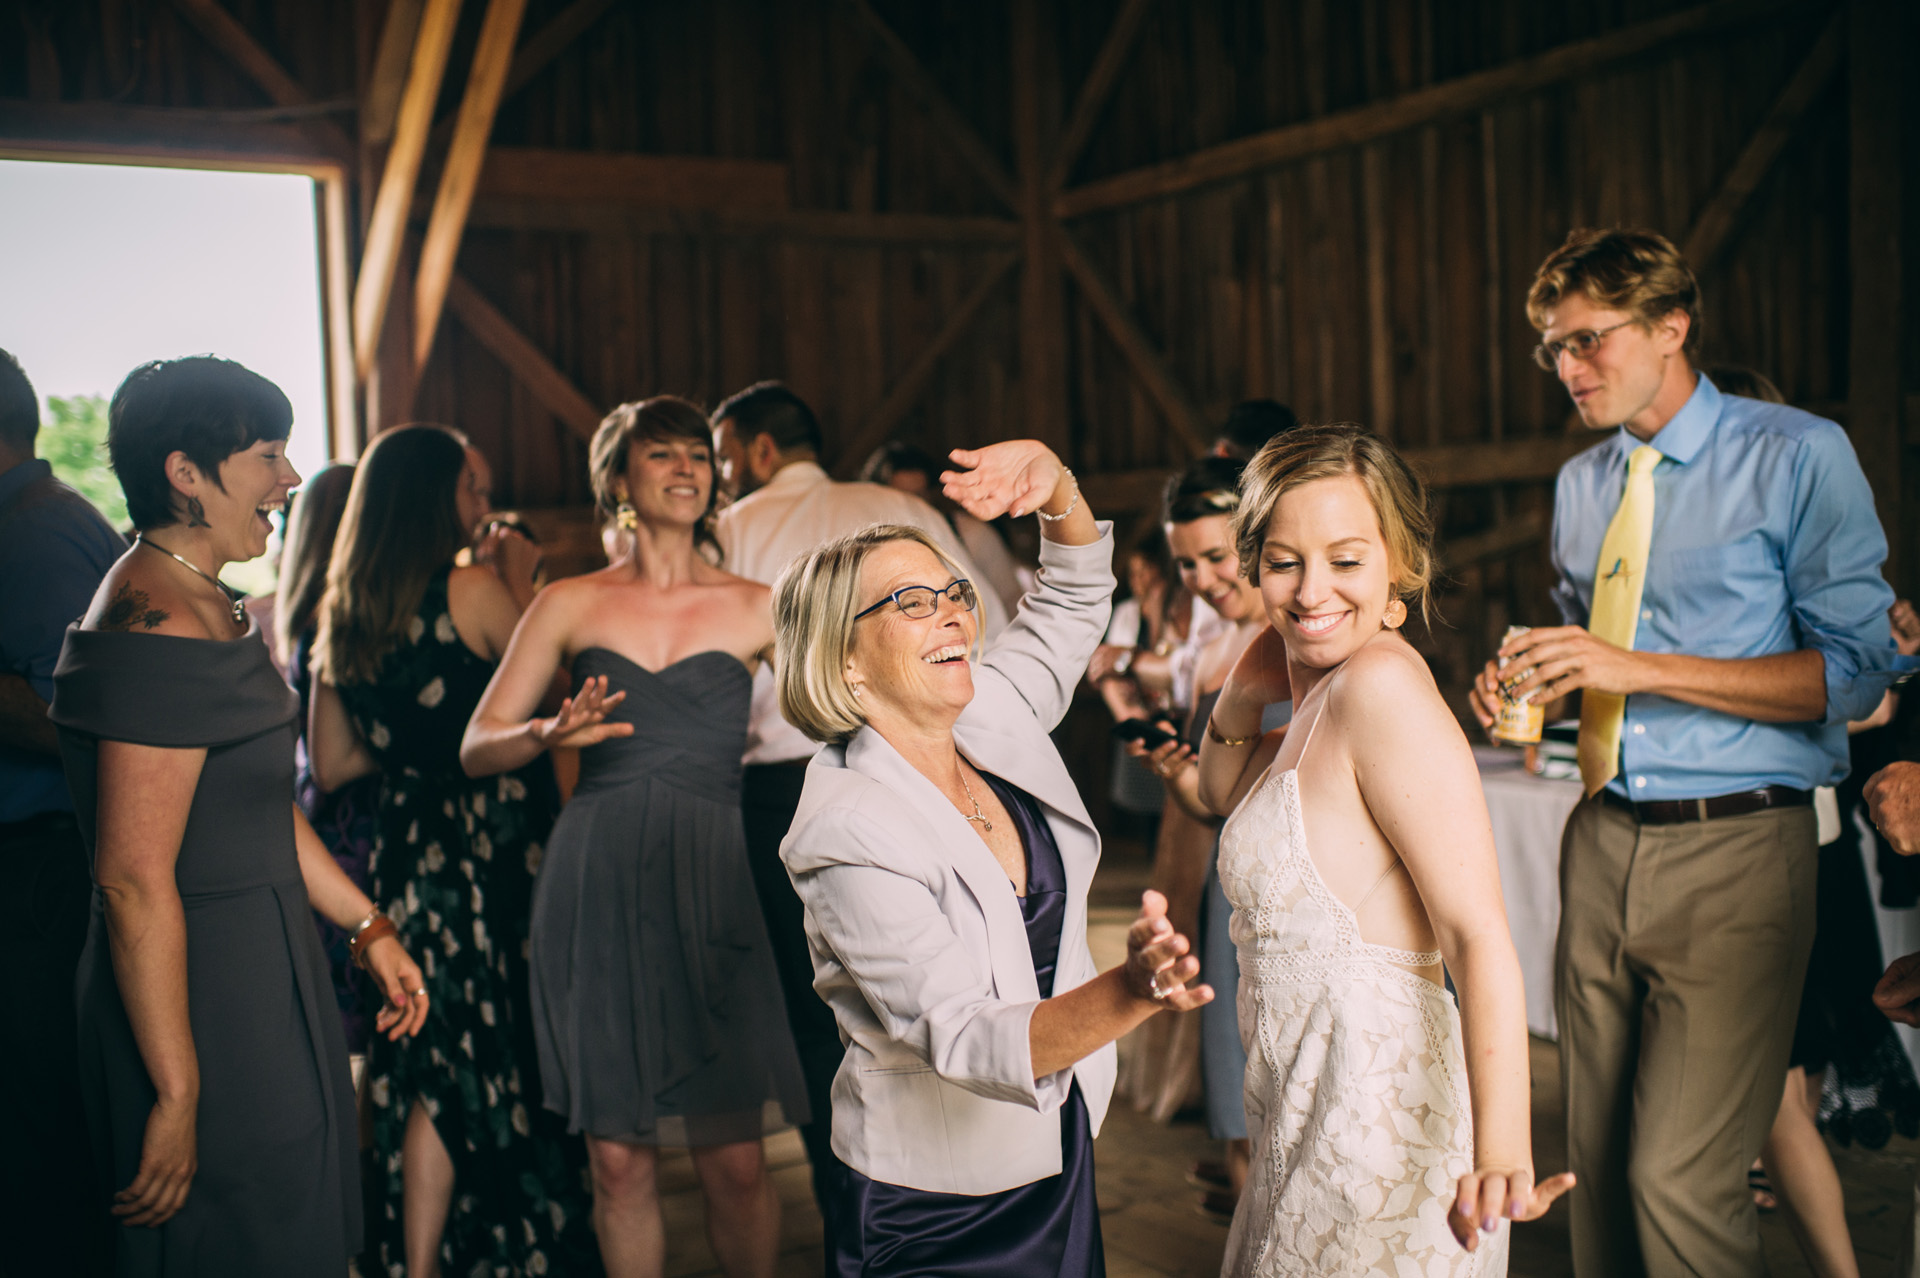 broadturn-farm-wedding-83